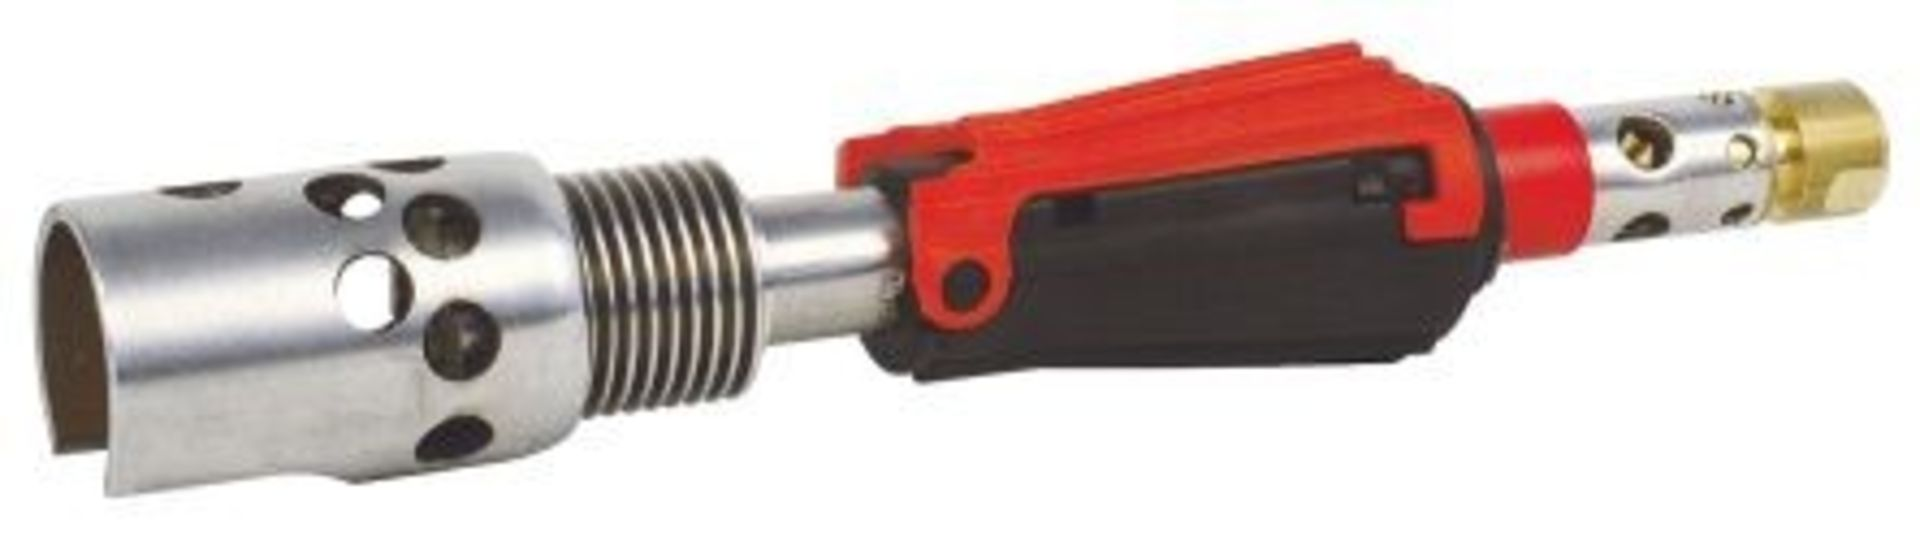 Brazing Torch for use with Gas Welding Equipment